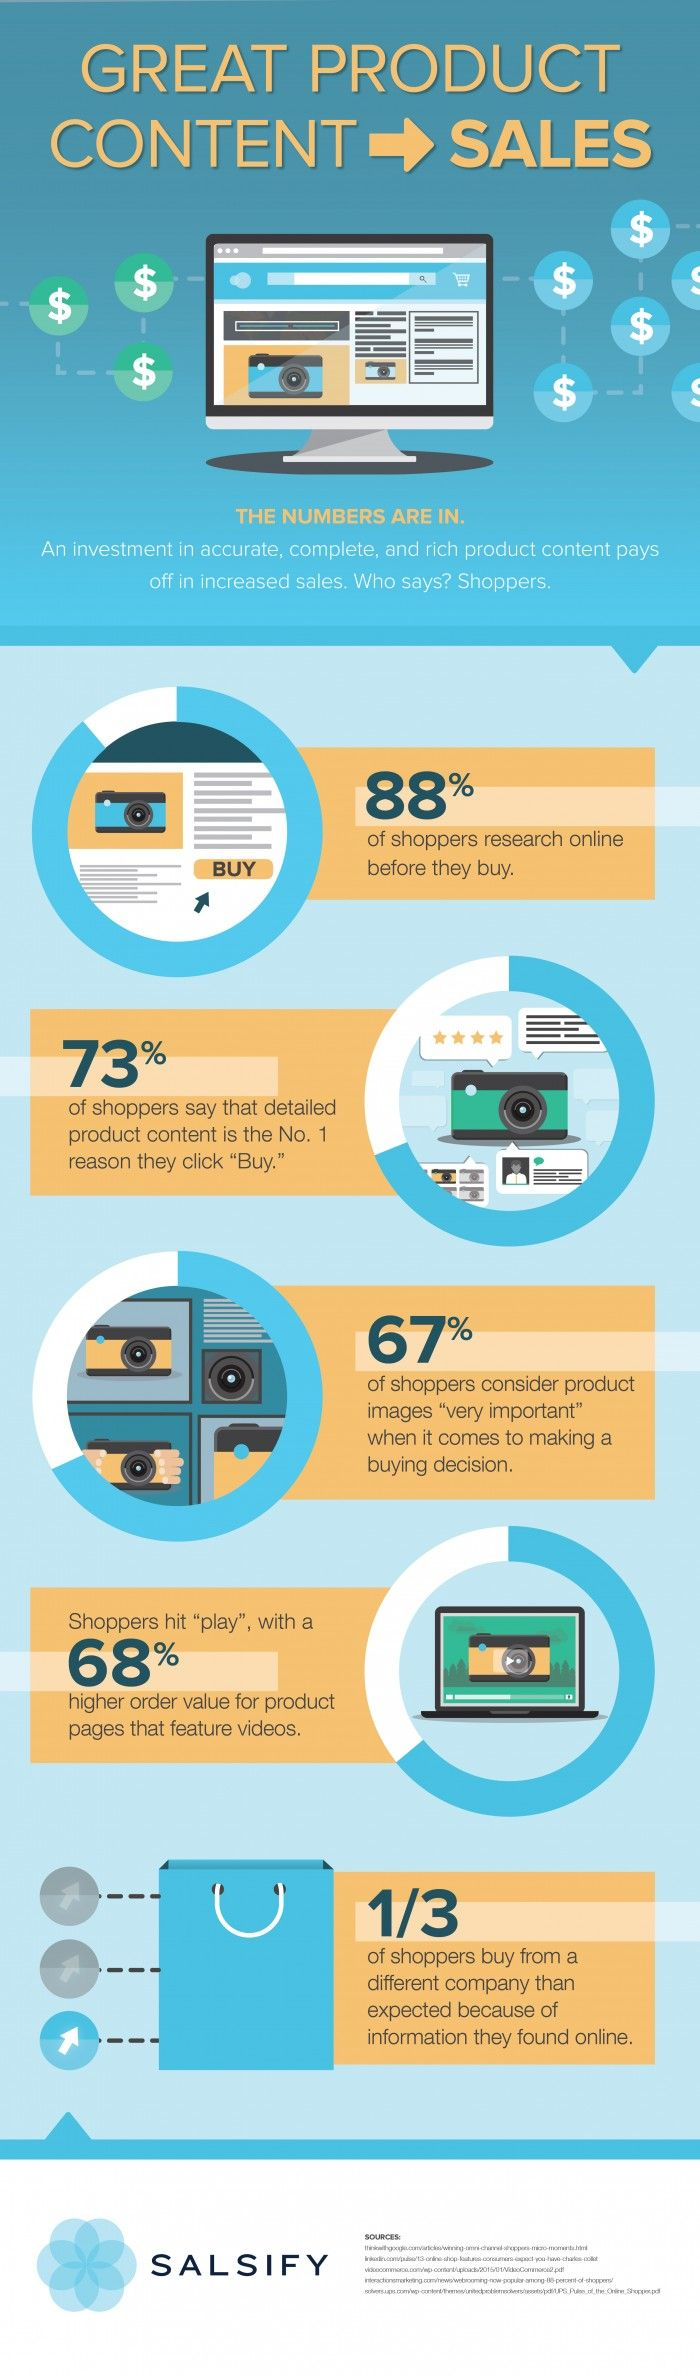 Great Product Content Drives Sales